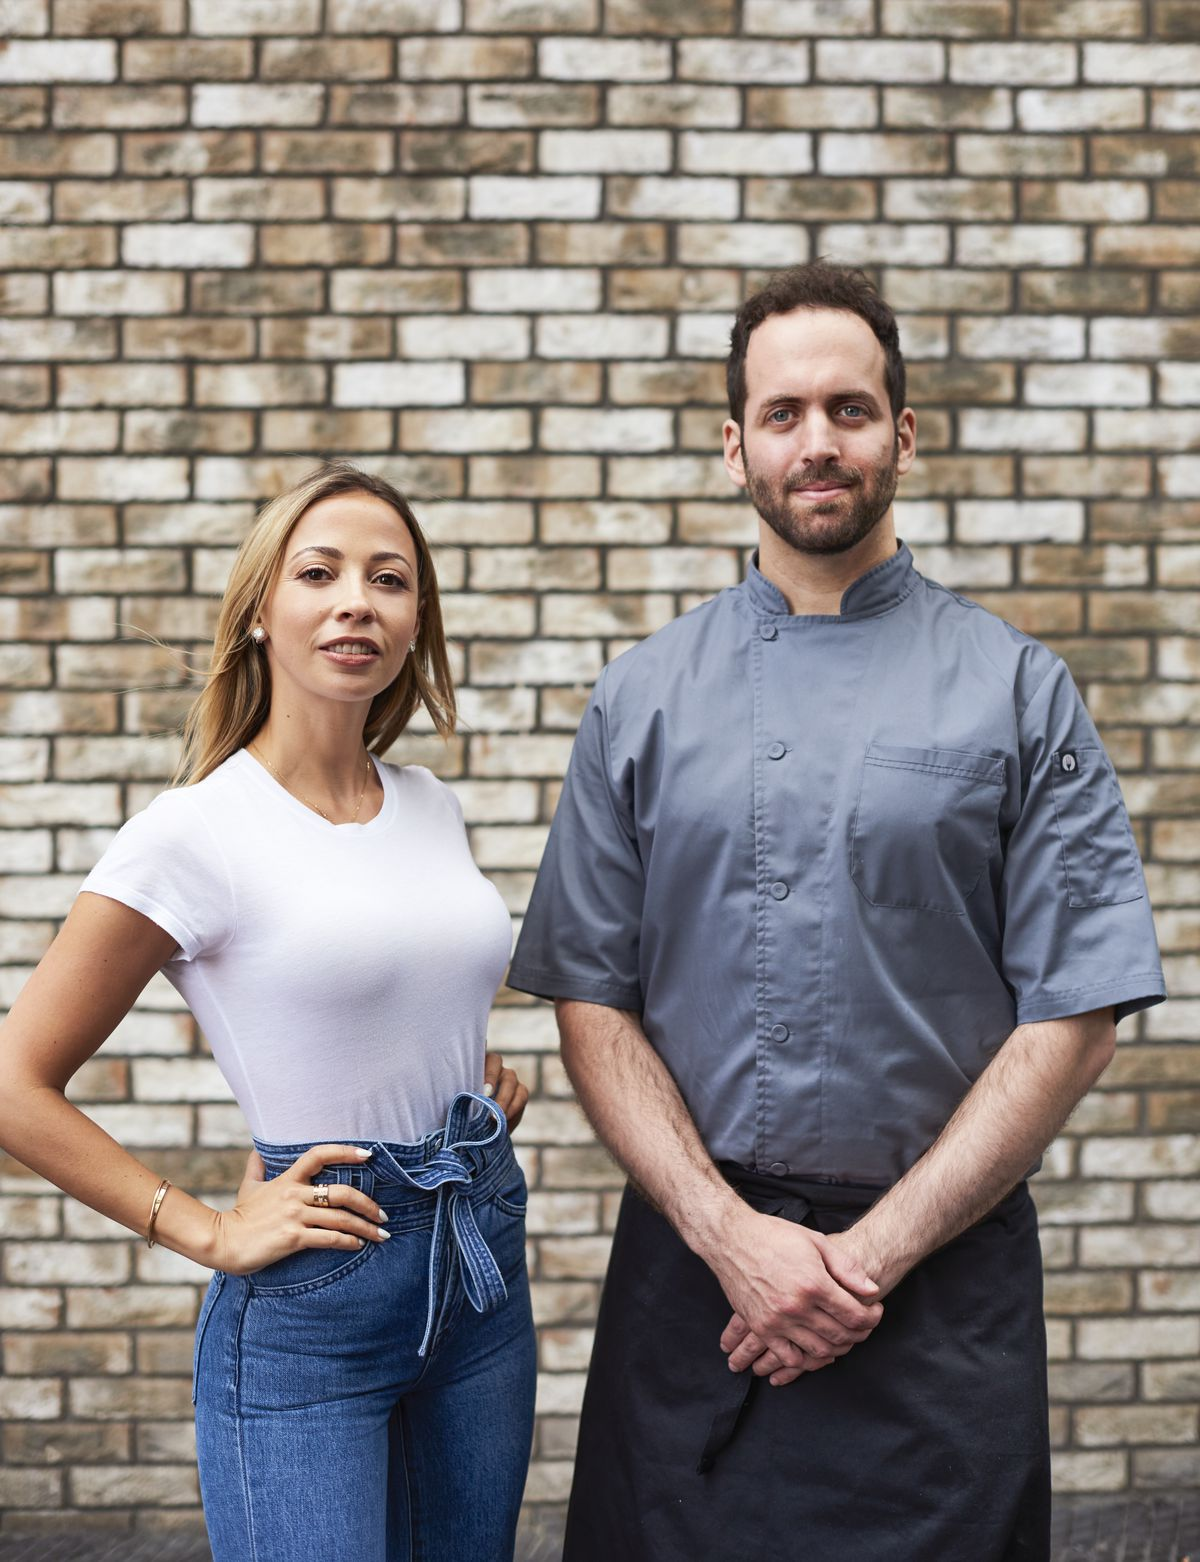 Founder Victoria Paltina and head chef Oren King at Haya in Notting Hill, a new restaurant inspired by Tel Aviv